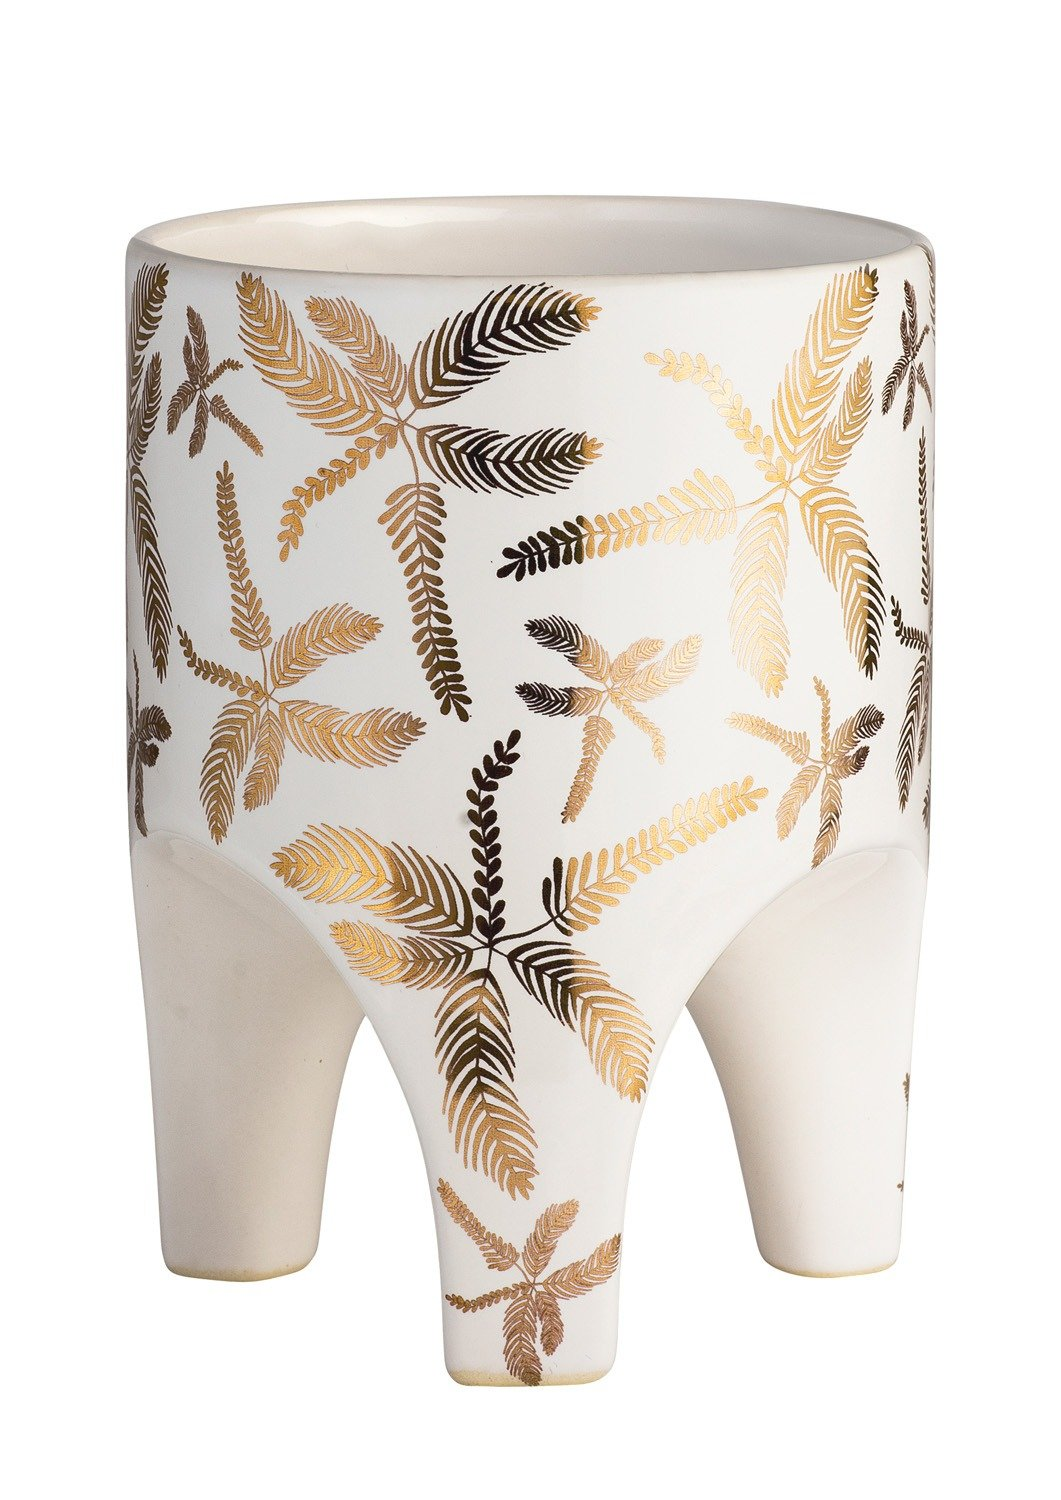 Angus & Celeste Arched Leg Planter Golden Tropical